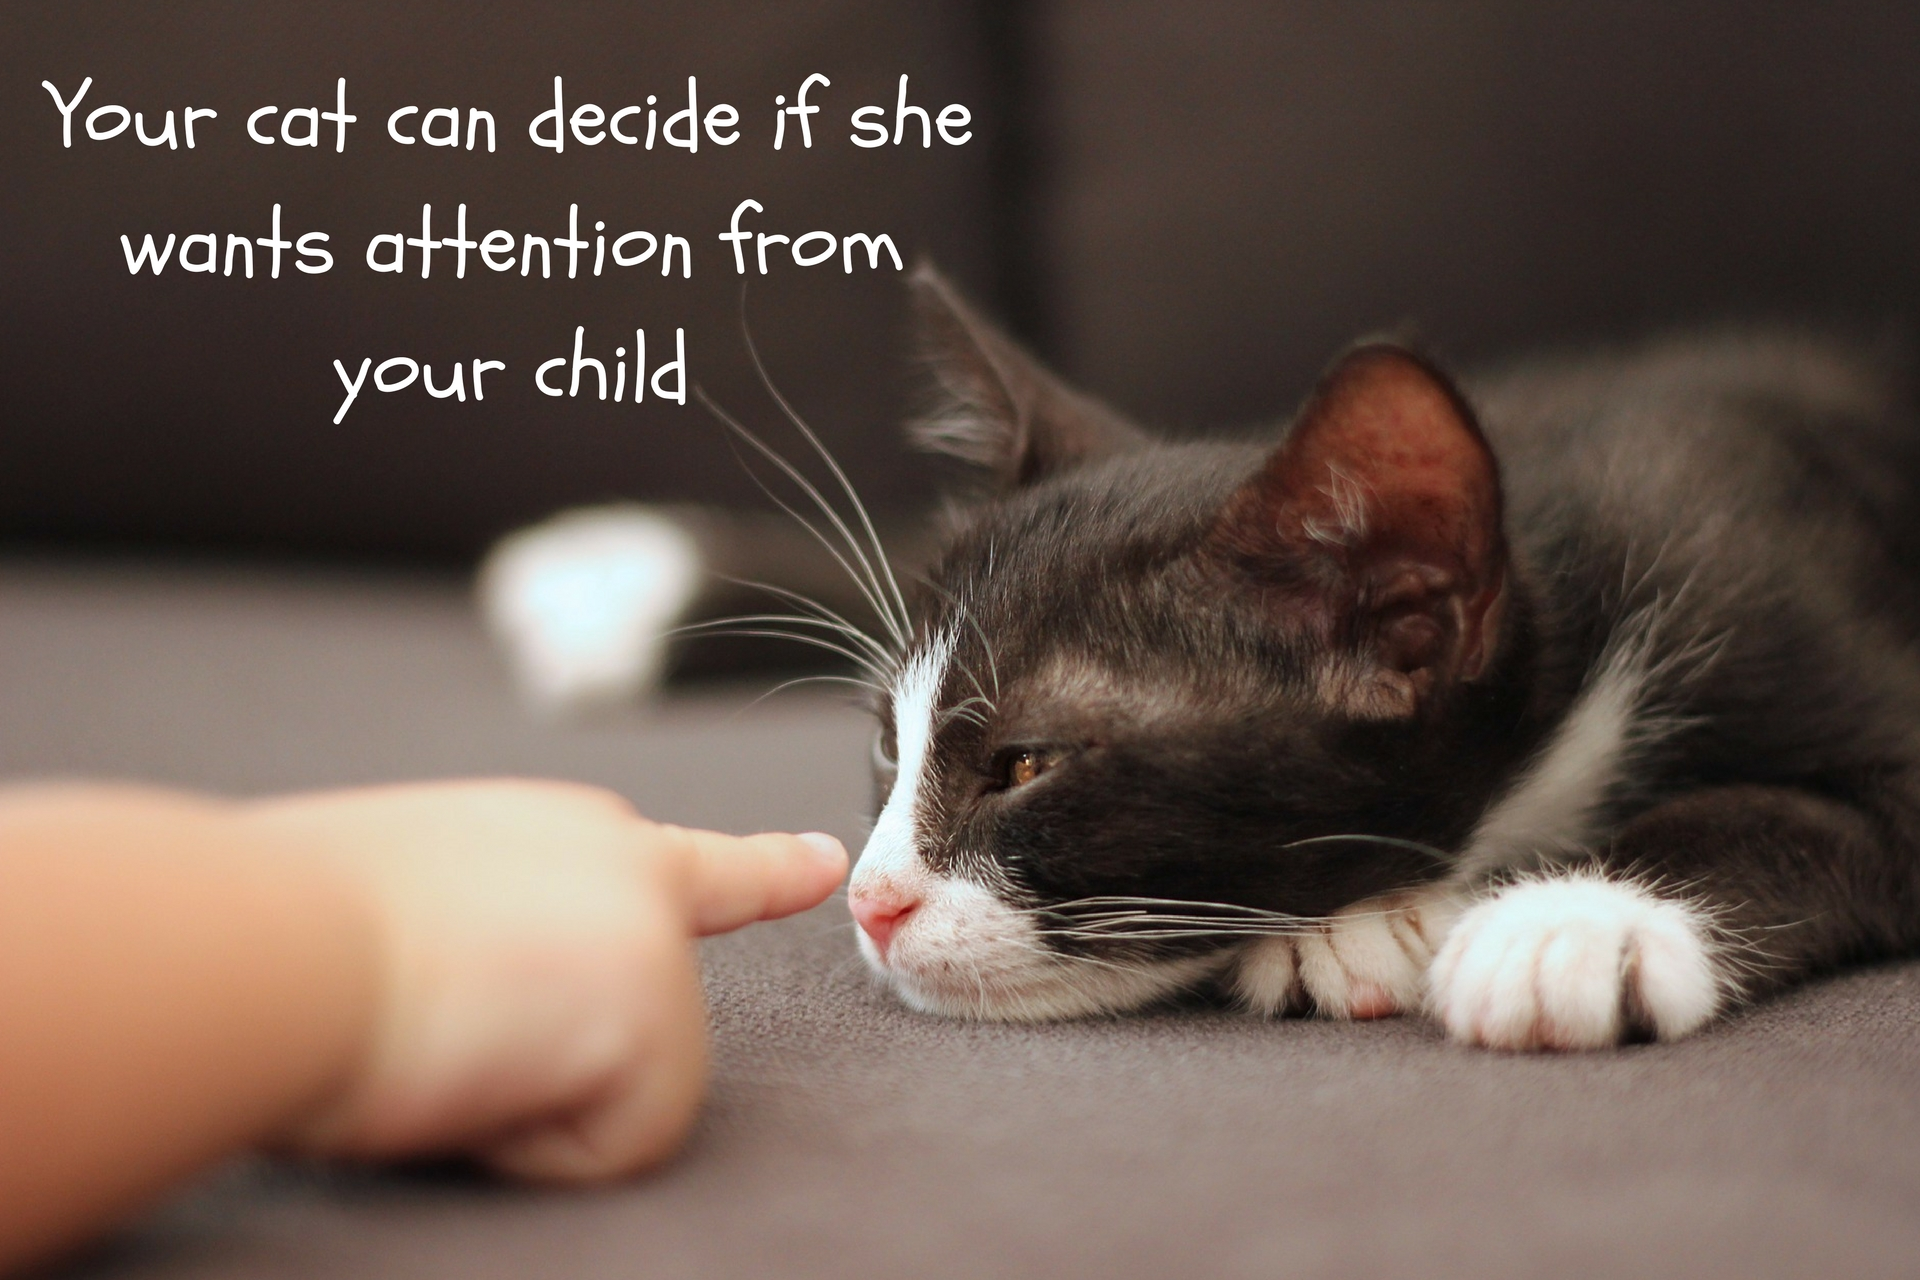 Let the cat decide if attention is OK